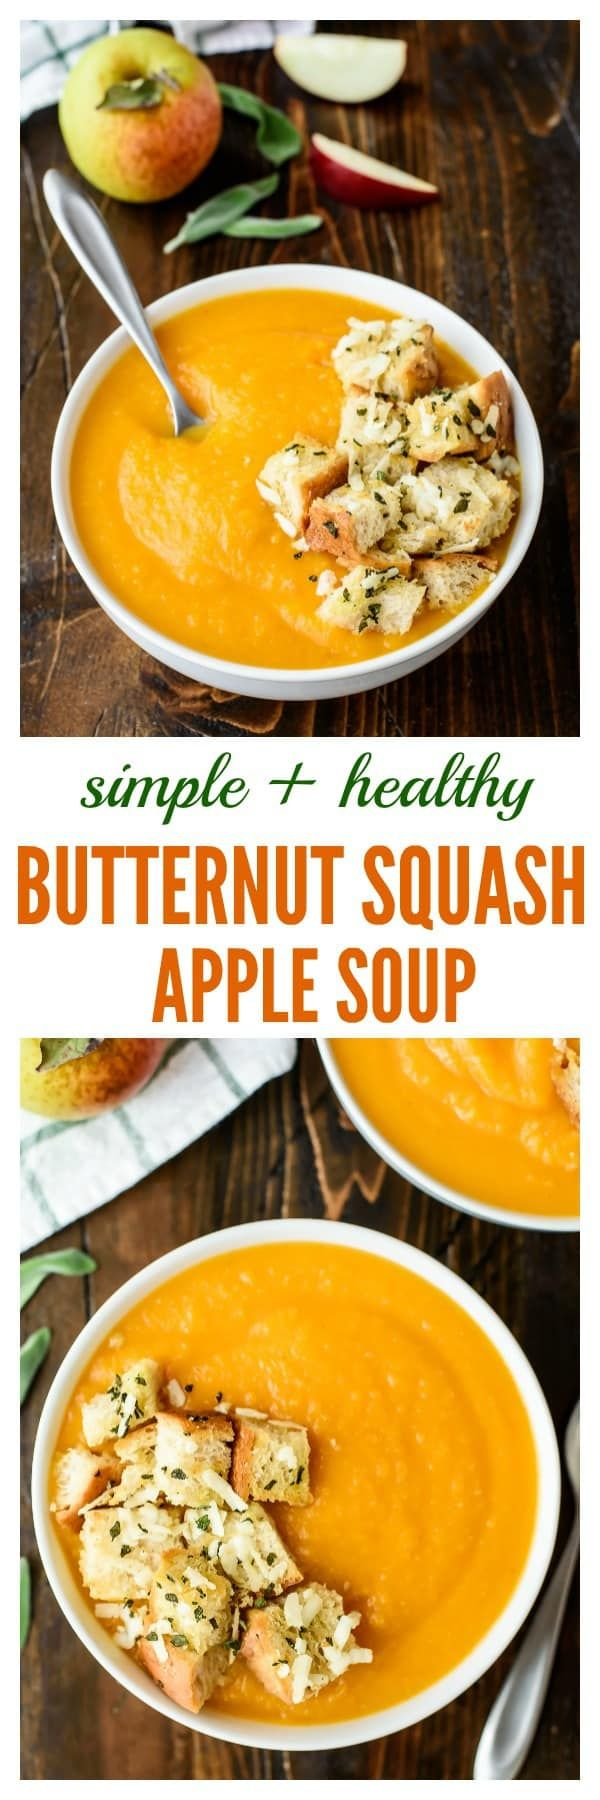 Butternut Squash Apple Soup is a healthy and easy squash soup recipe. Perfect for freezing and reheating. This is one of my favorite fall soup recipes! | @wellplated | #soup #squash #fall #comfortfood #recipe